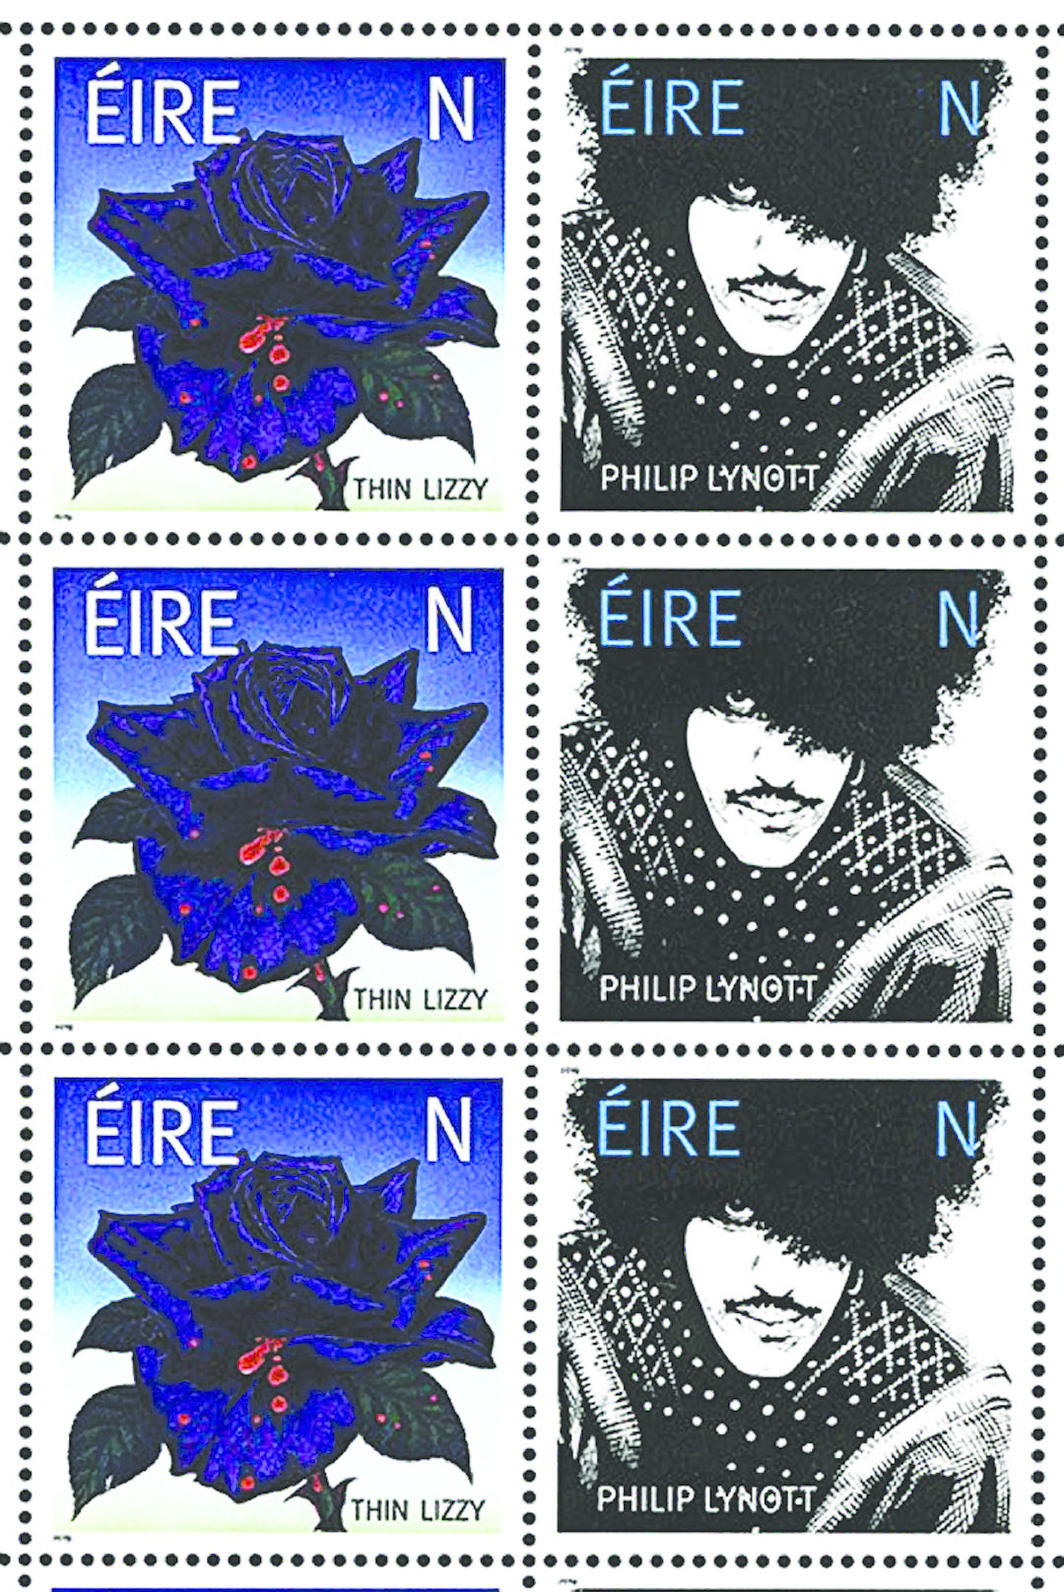 Thin Lizzy commemorative Irish postage stamps, 2019.